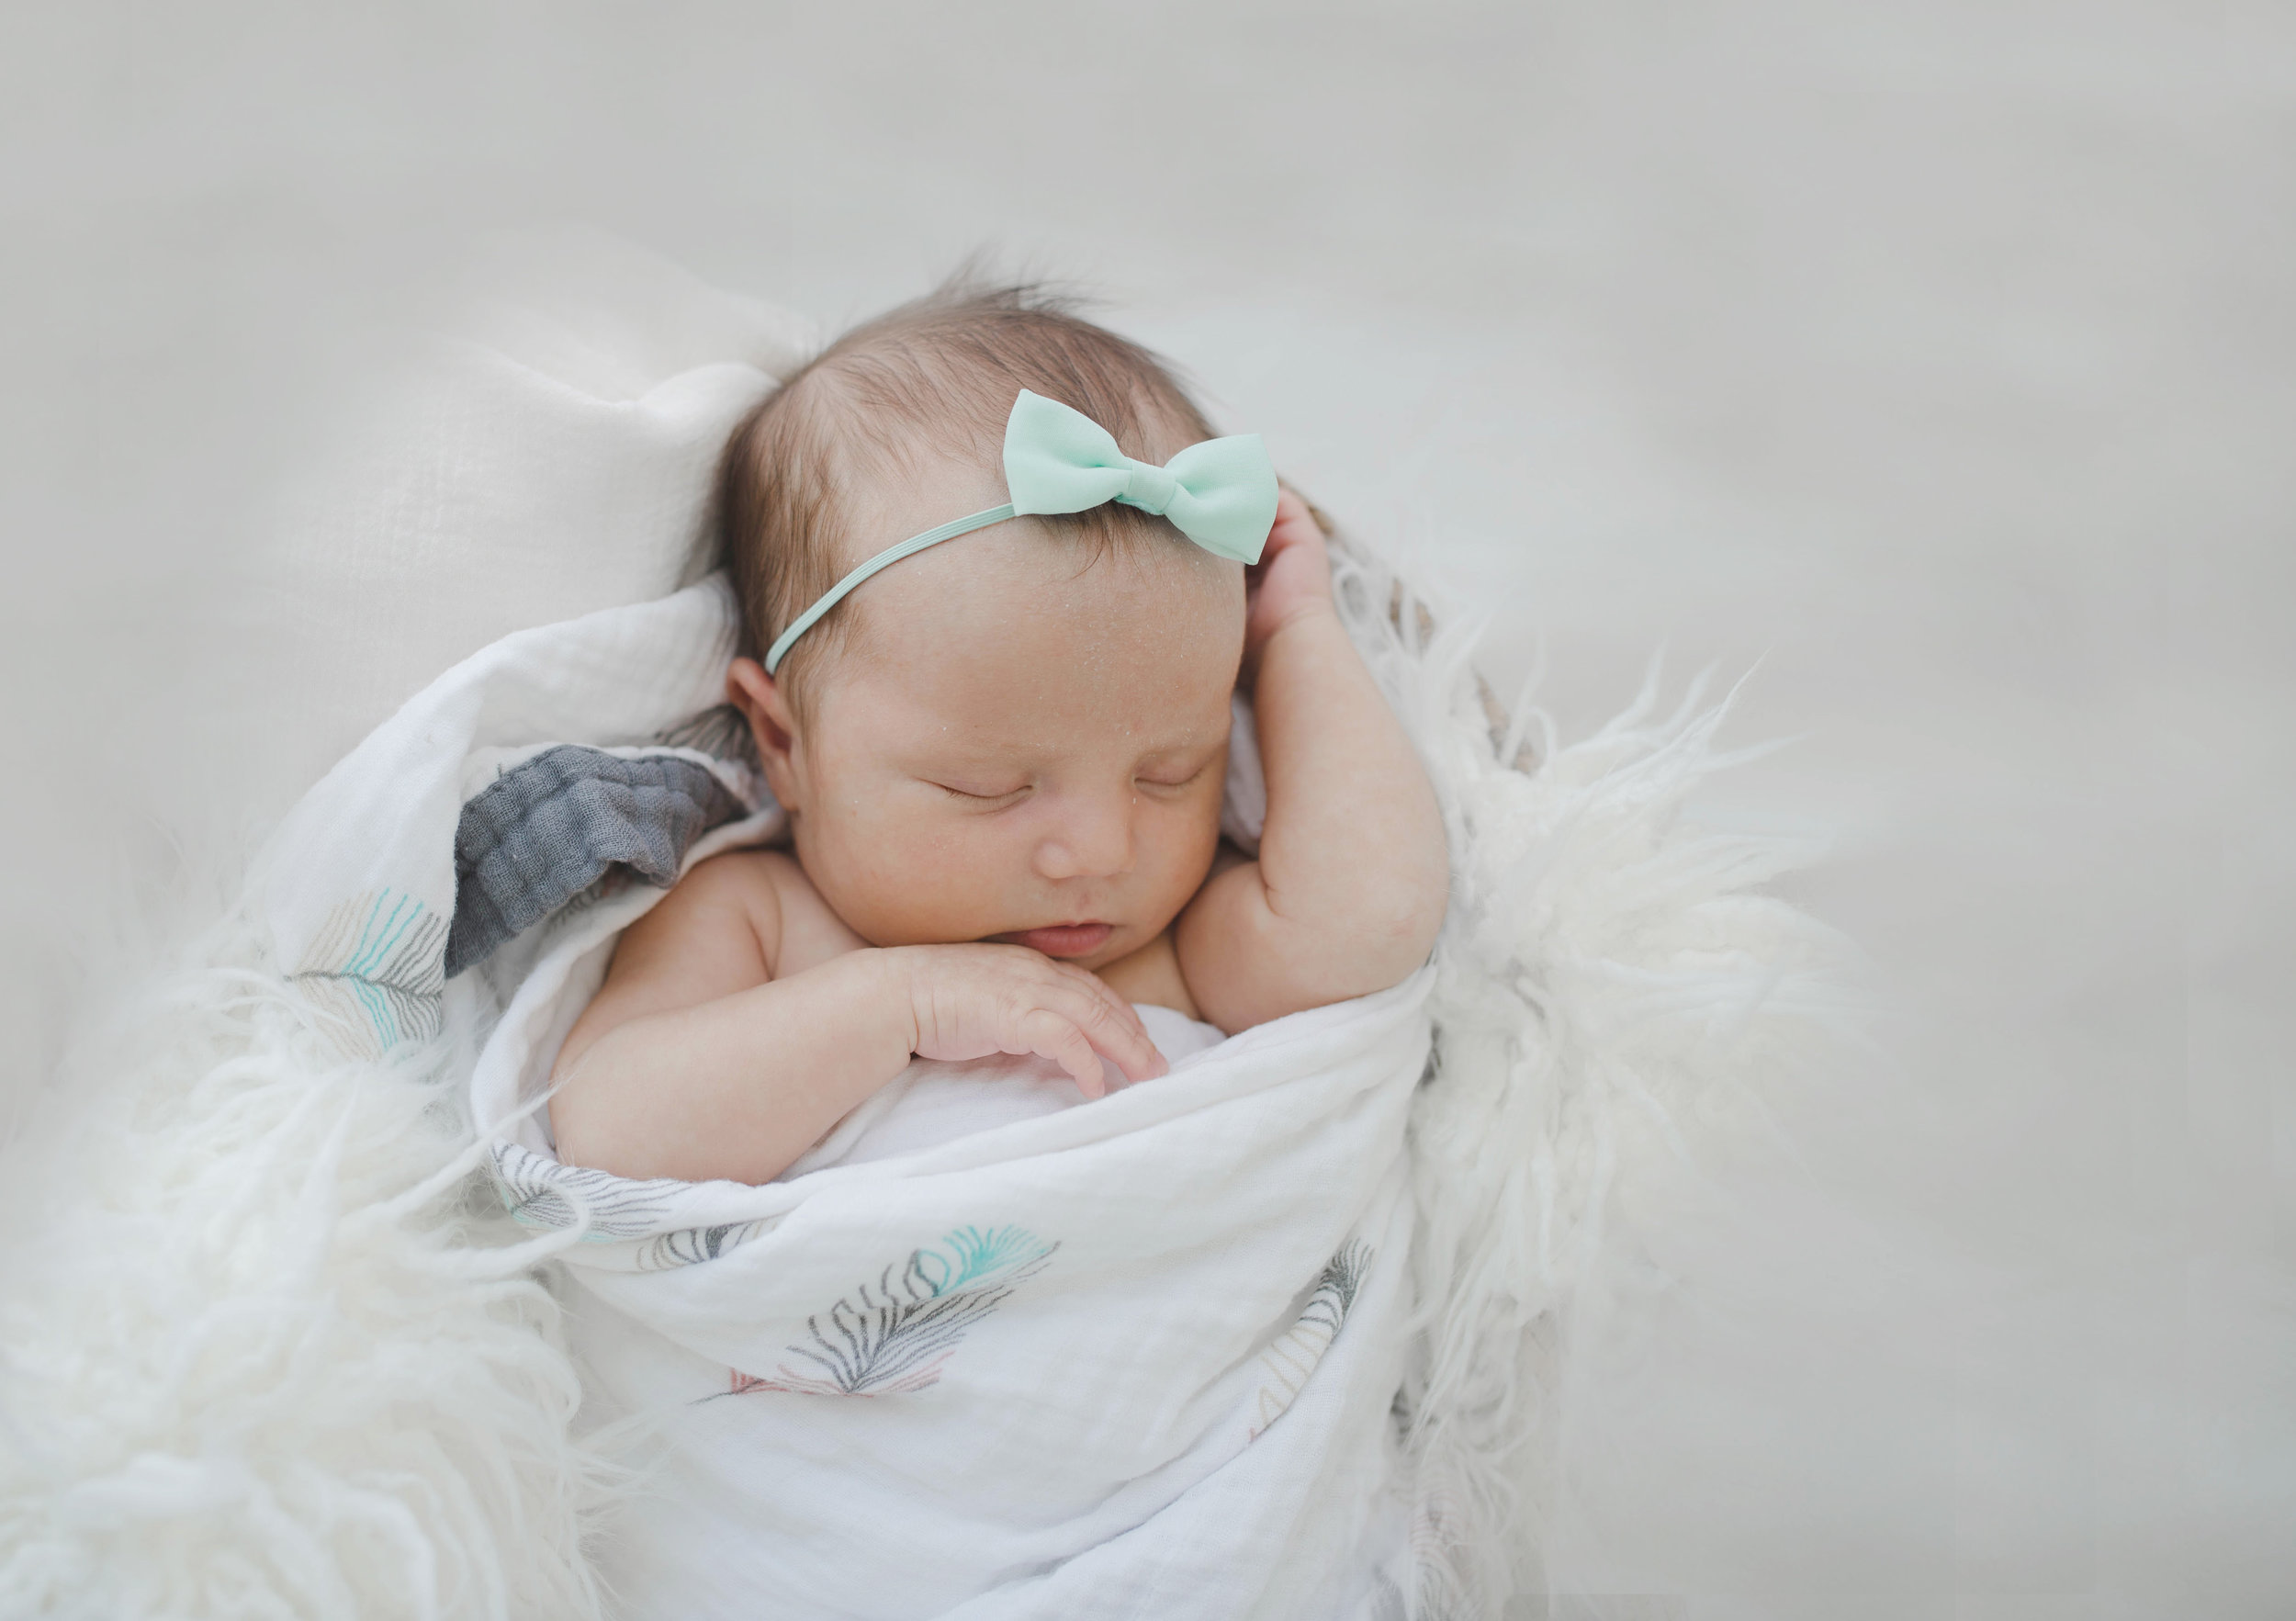 Newborn Solo Session - In this session, only the newborn is photographed.Includes 15 Digital Images. Session starts at $300